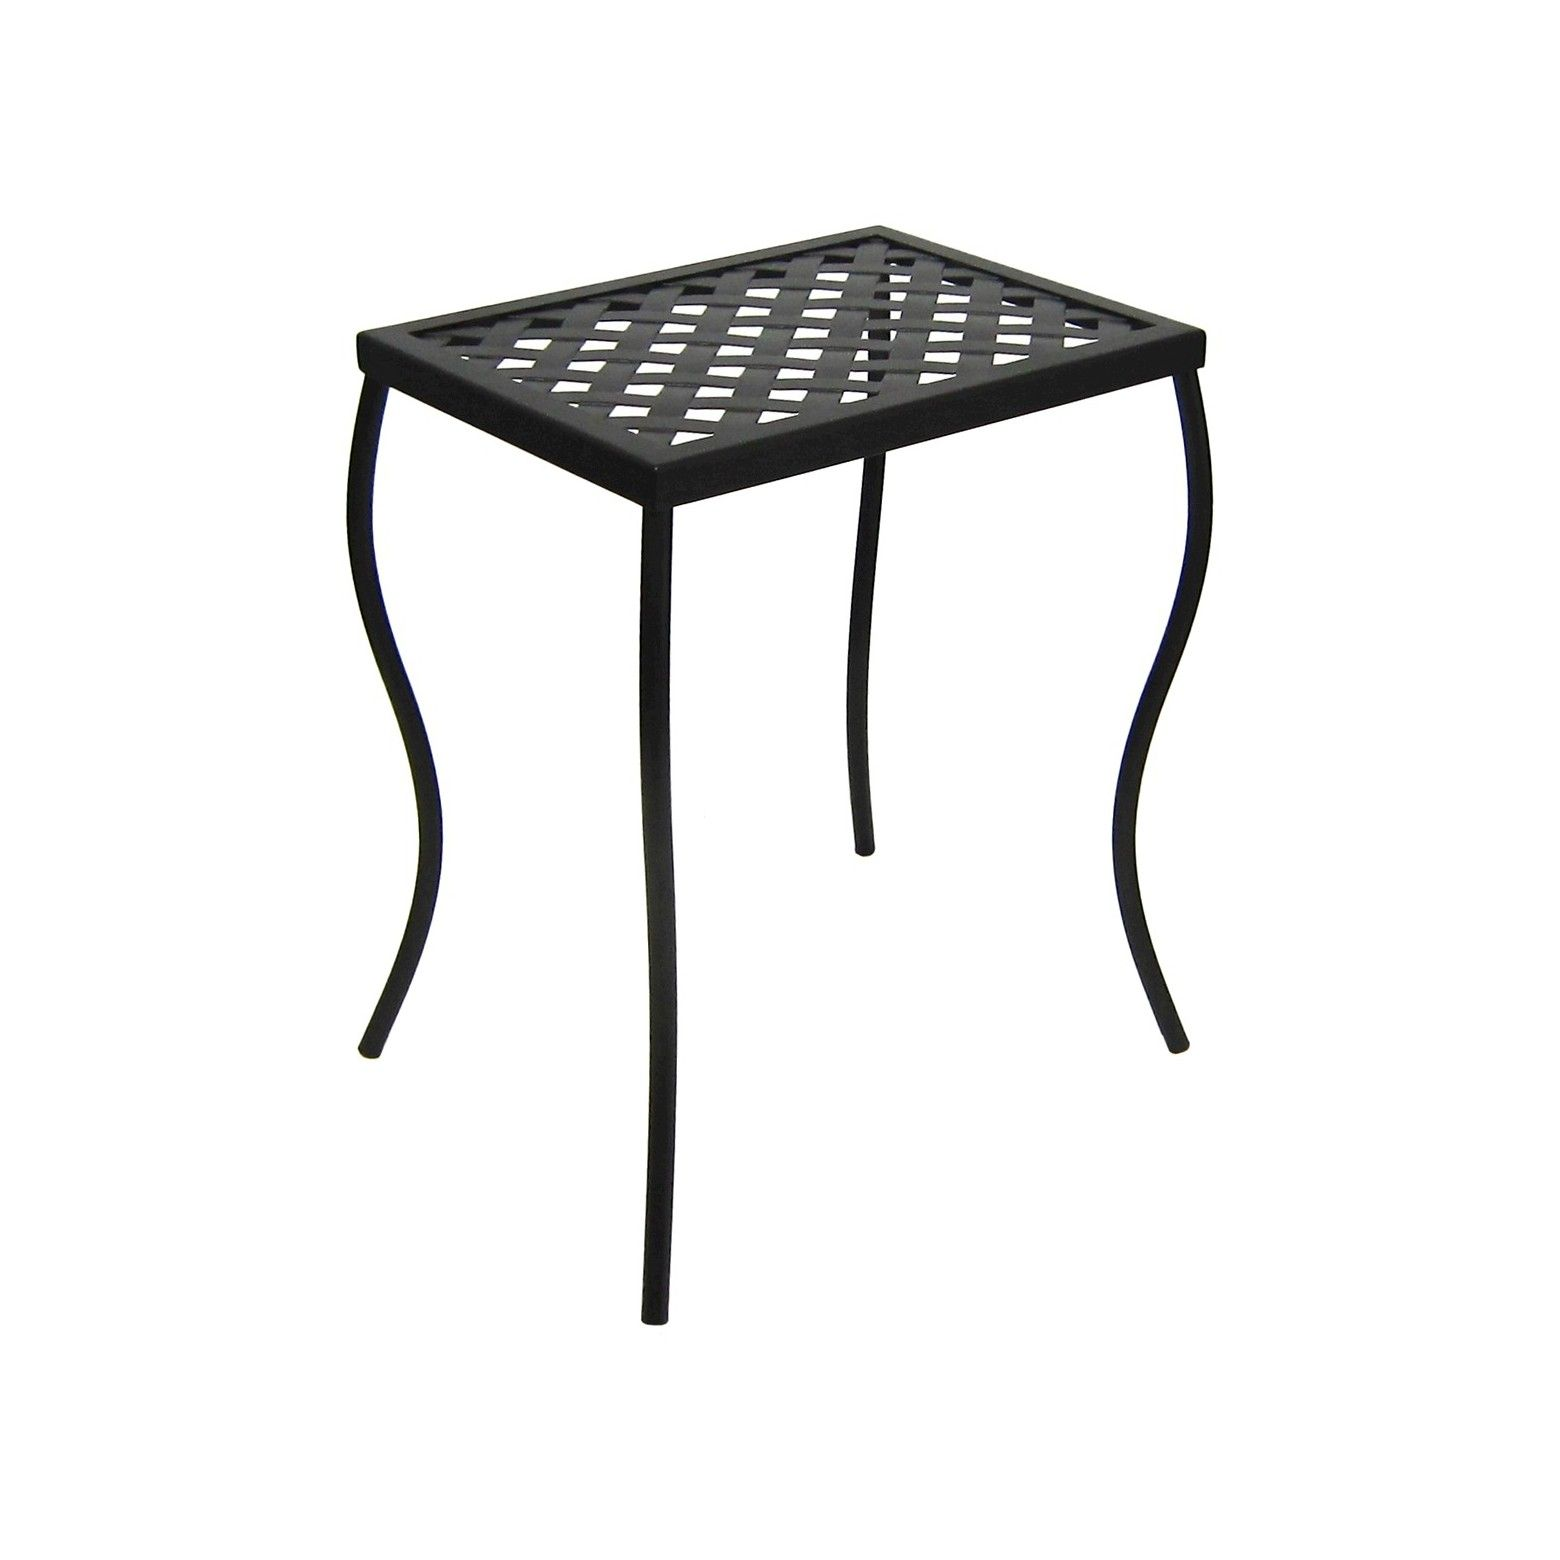 outdoor woven metal accent table threshold black seasons dress outside patio end with glass door pipe magnussen pinebrook red cloth nursery furniture diy cooler tall square coffee